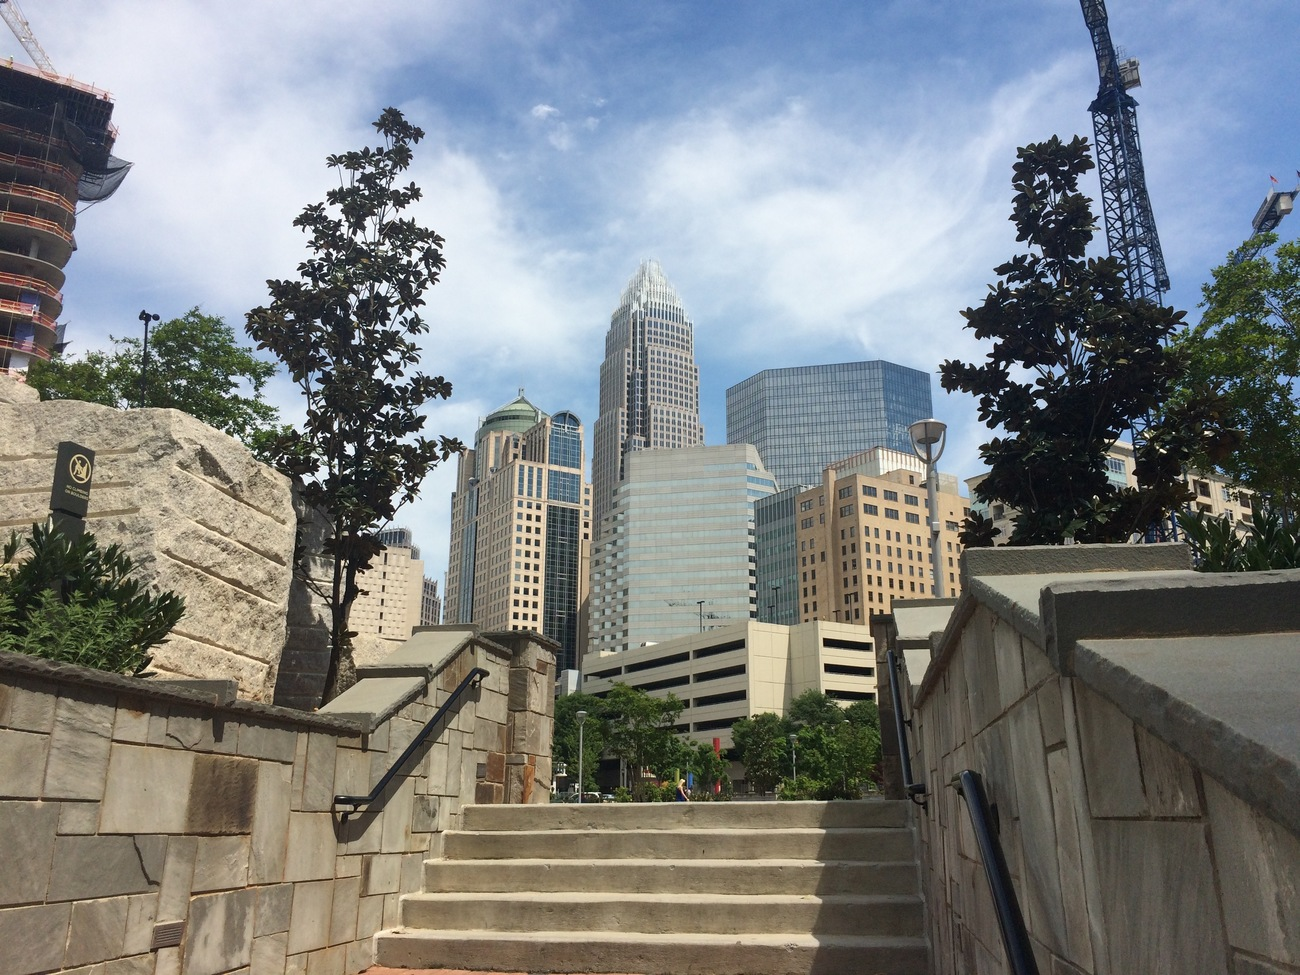 Uptown Charlotte's environmental challenge moves to mobile